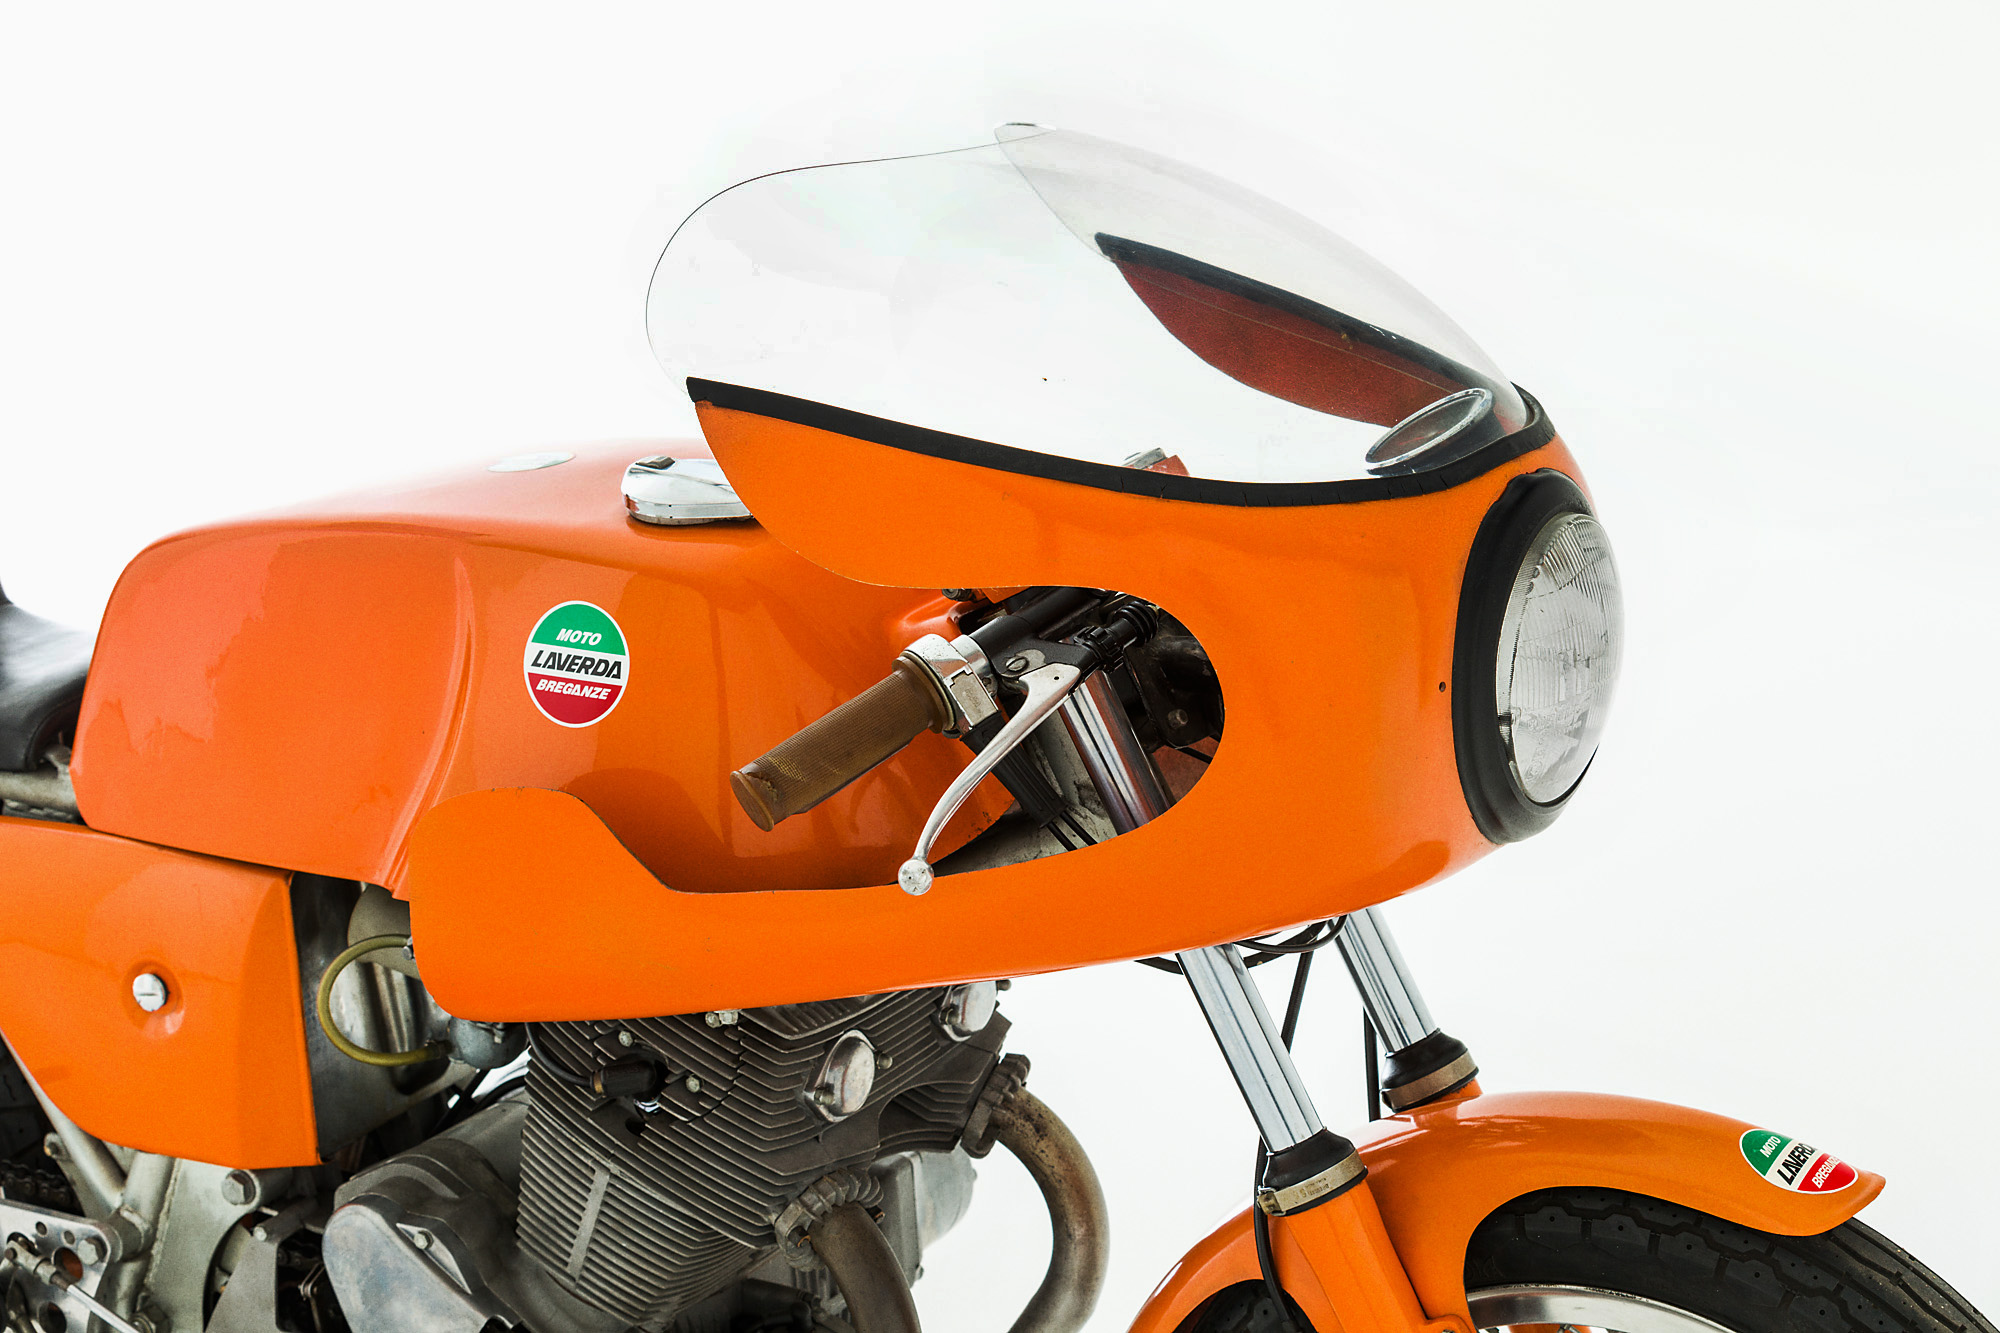 Laverda SFC fairing 1972